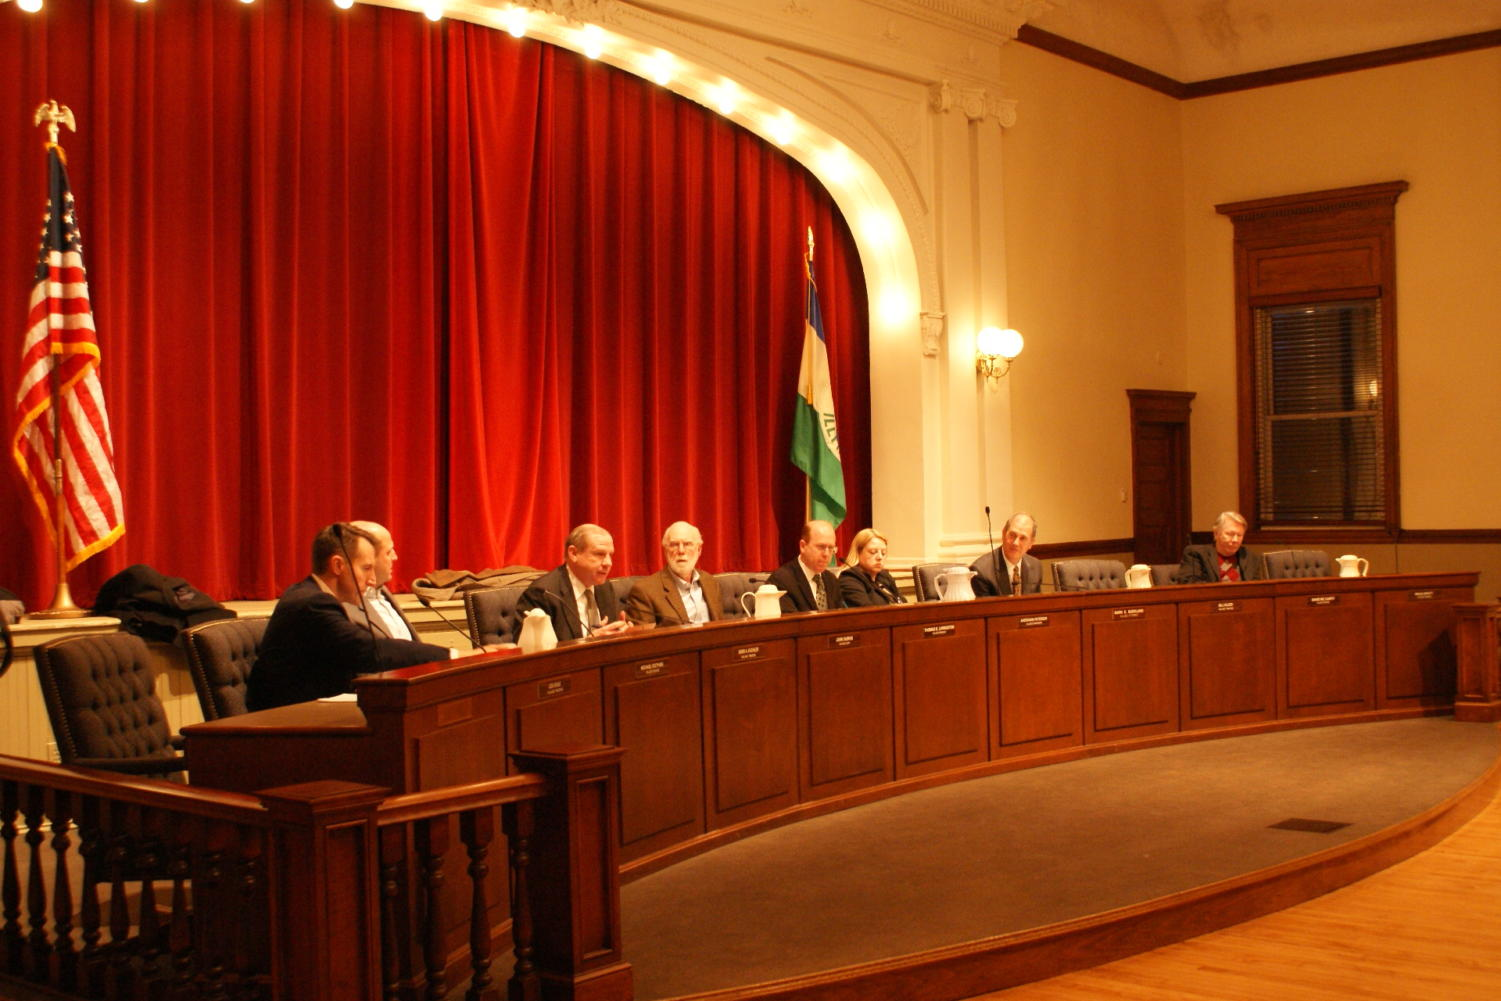 Village board members debate at the recent meeting (Shearrill/LION).